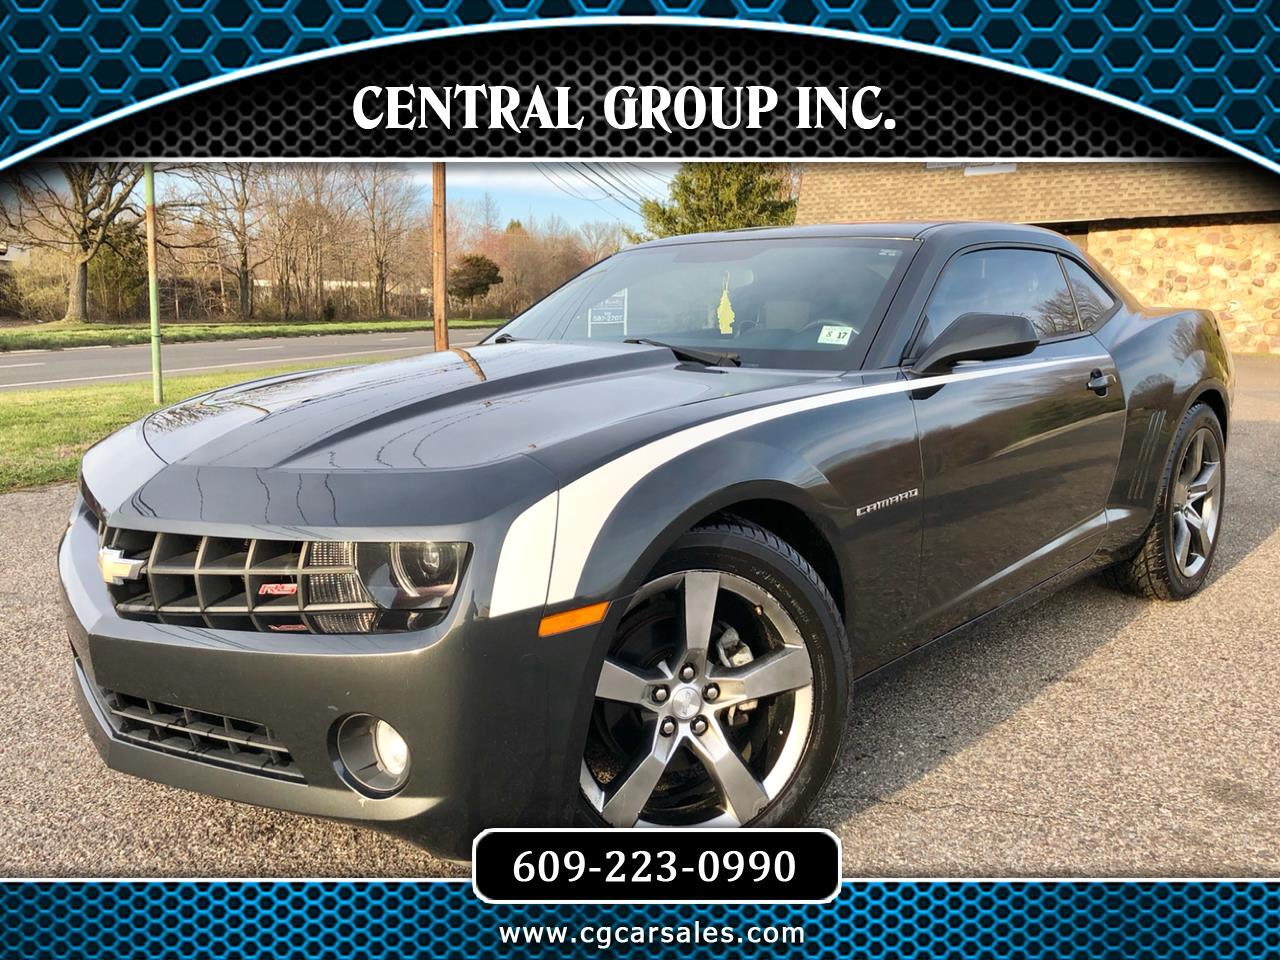 Chevrolet Camaro RS 2dr Cpe 1LT 2012